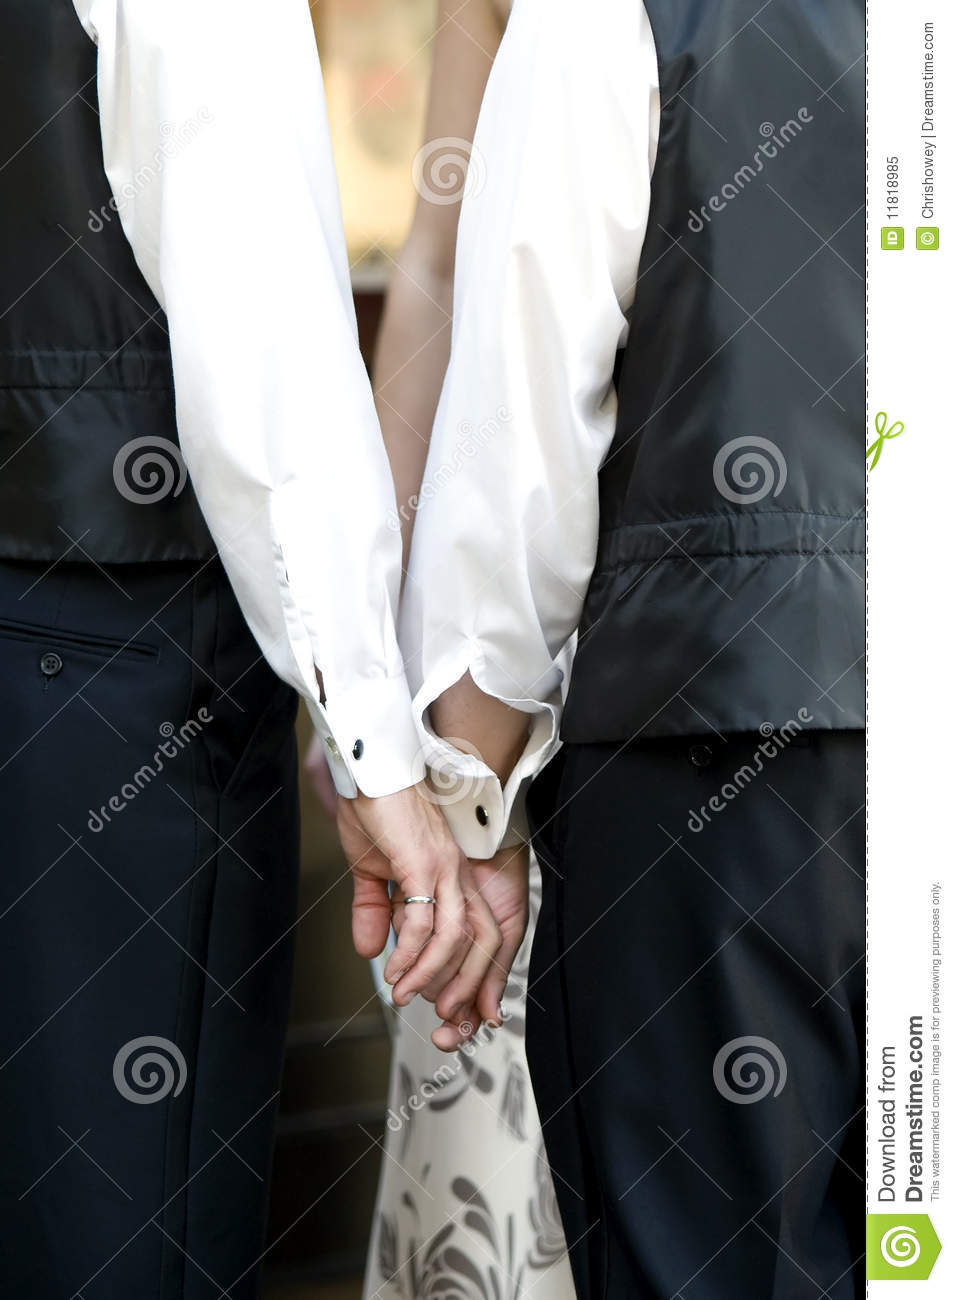 royalty free stock photo gay wedding couple holding hands image gay mens wedding rings Gay Wedding Couple Holding Hands